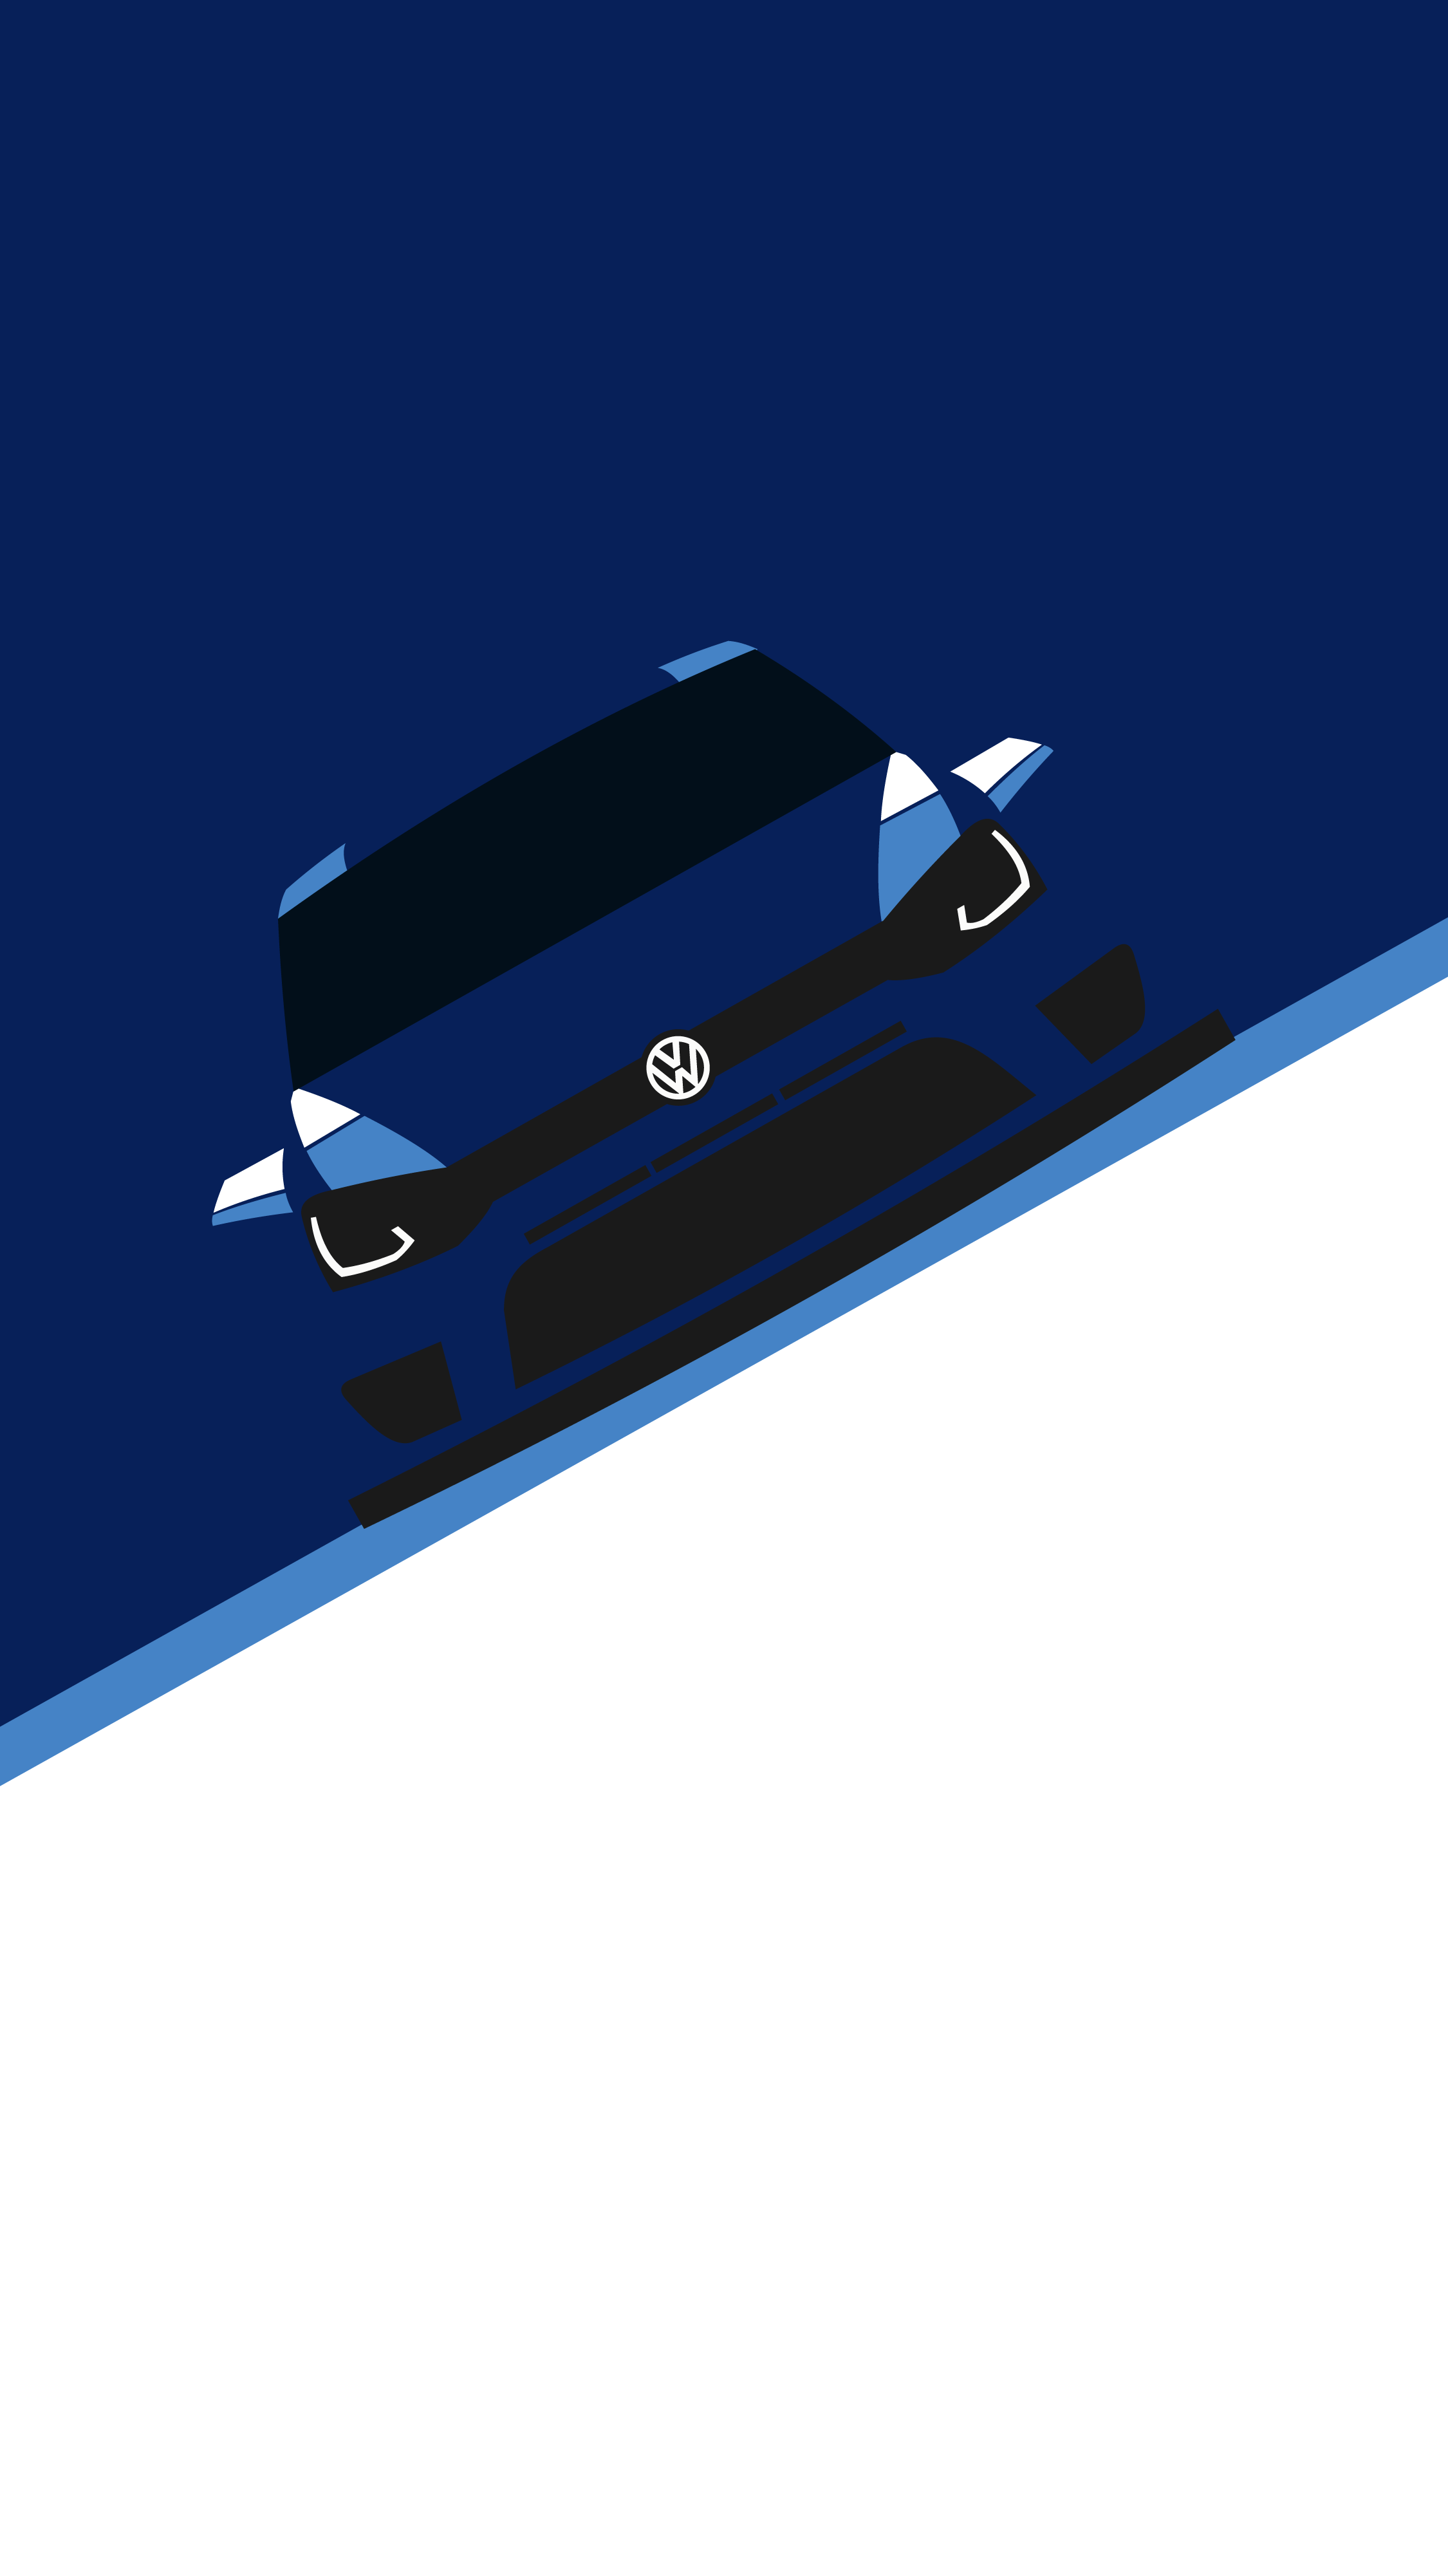 Vw Polo Wallpaper Phone 2250x4002 Download Hd Wallpaper Wallpapertip